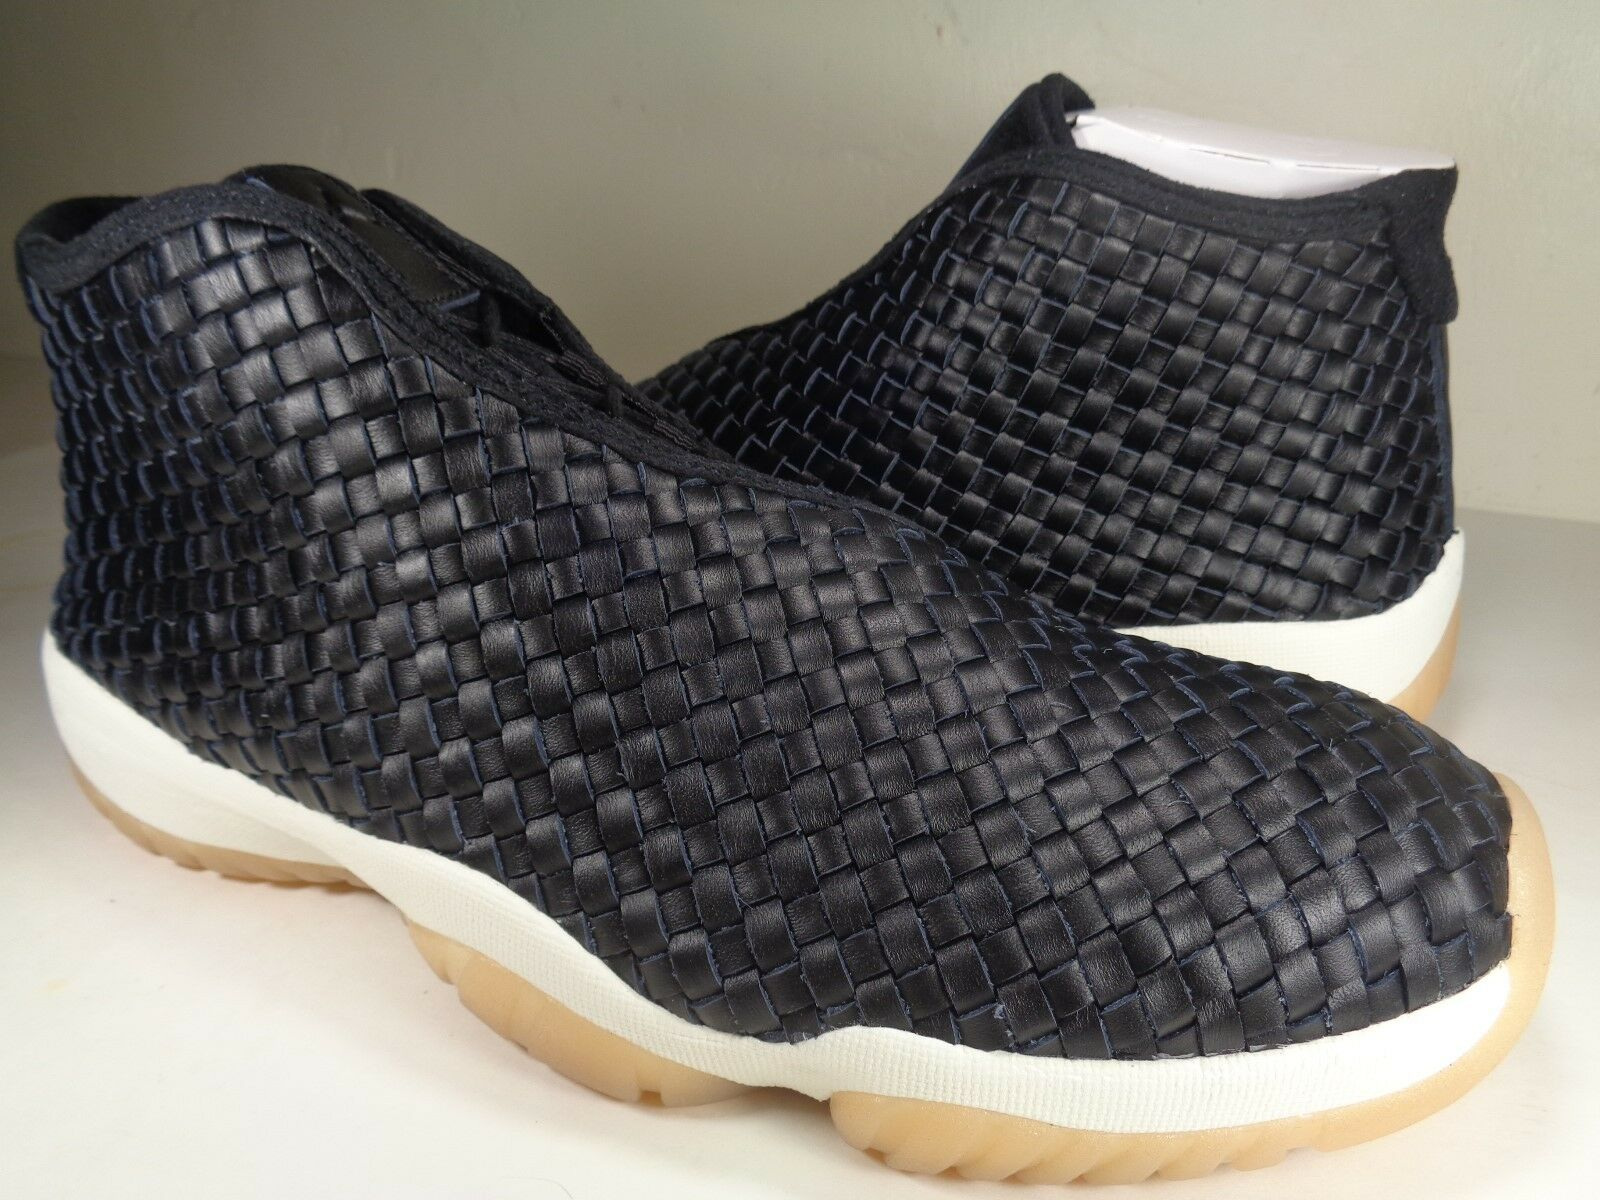 Nike Air Jordan Future Premium Black Sail Gum Yellow SZ 13 (652141-019)